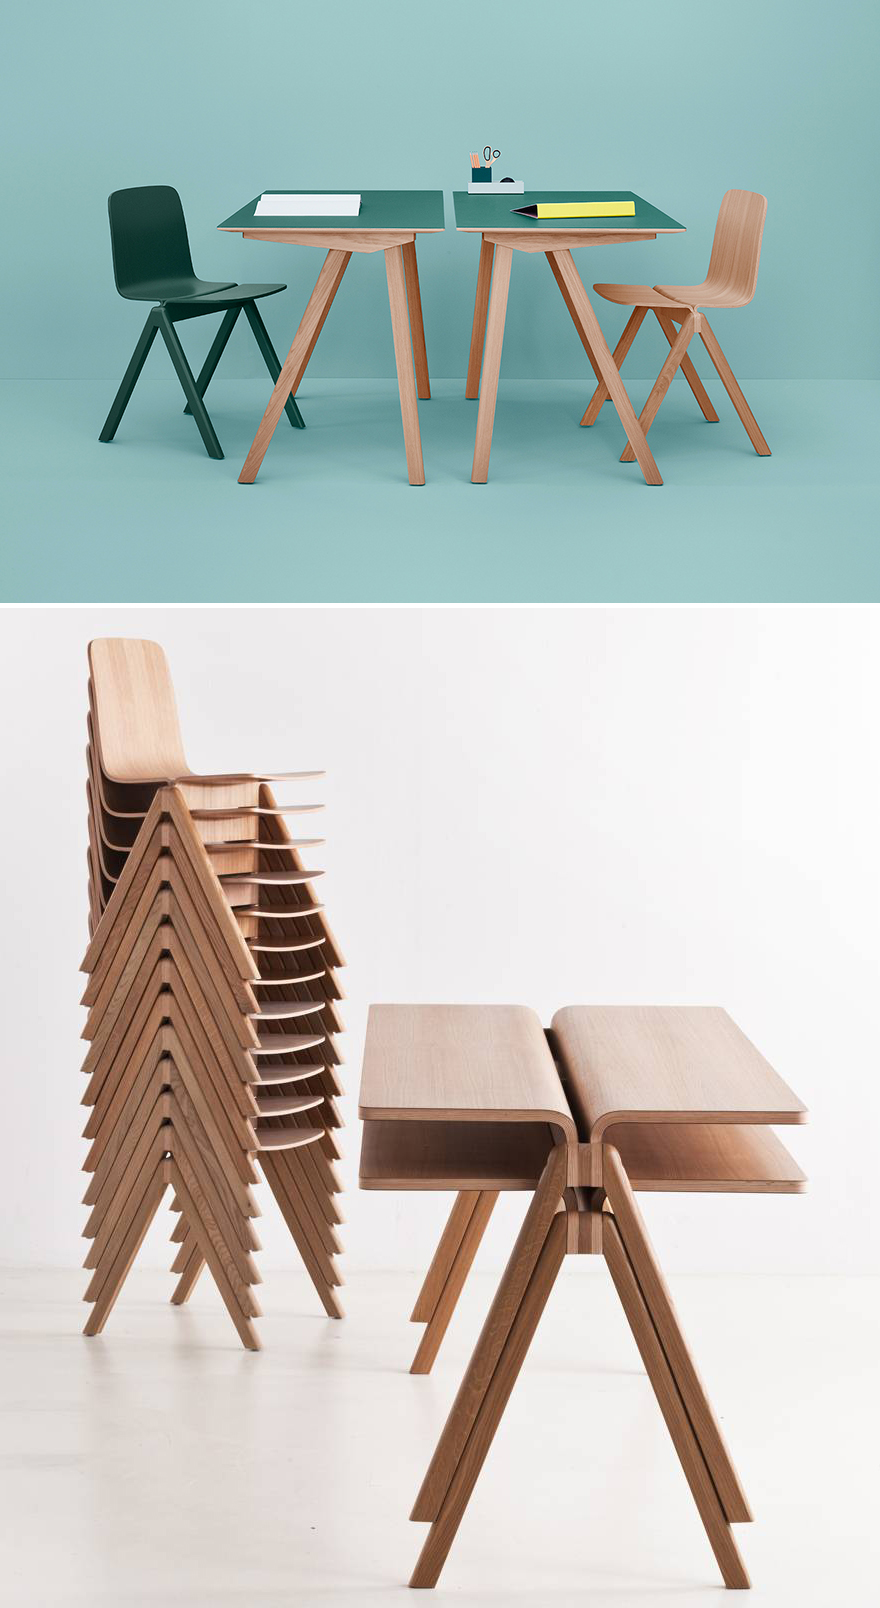 Furniture Design School Captivating Making School Furniture Beautiful The Bouroullecs' Copenhague . Design Inspiration